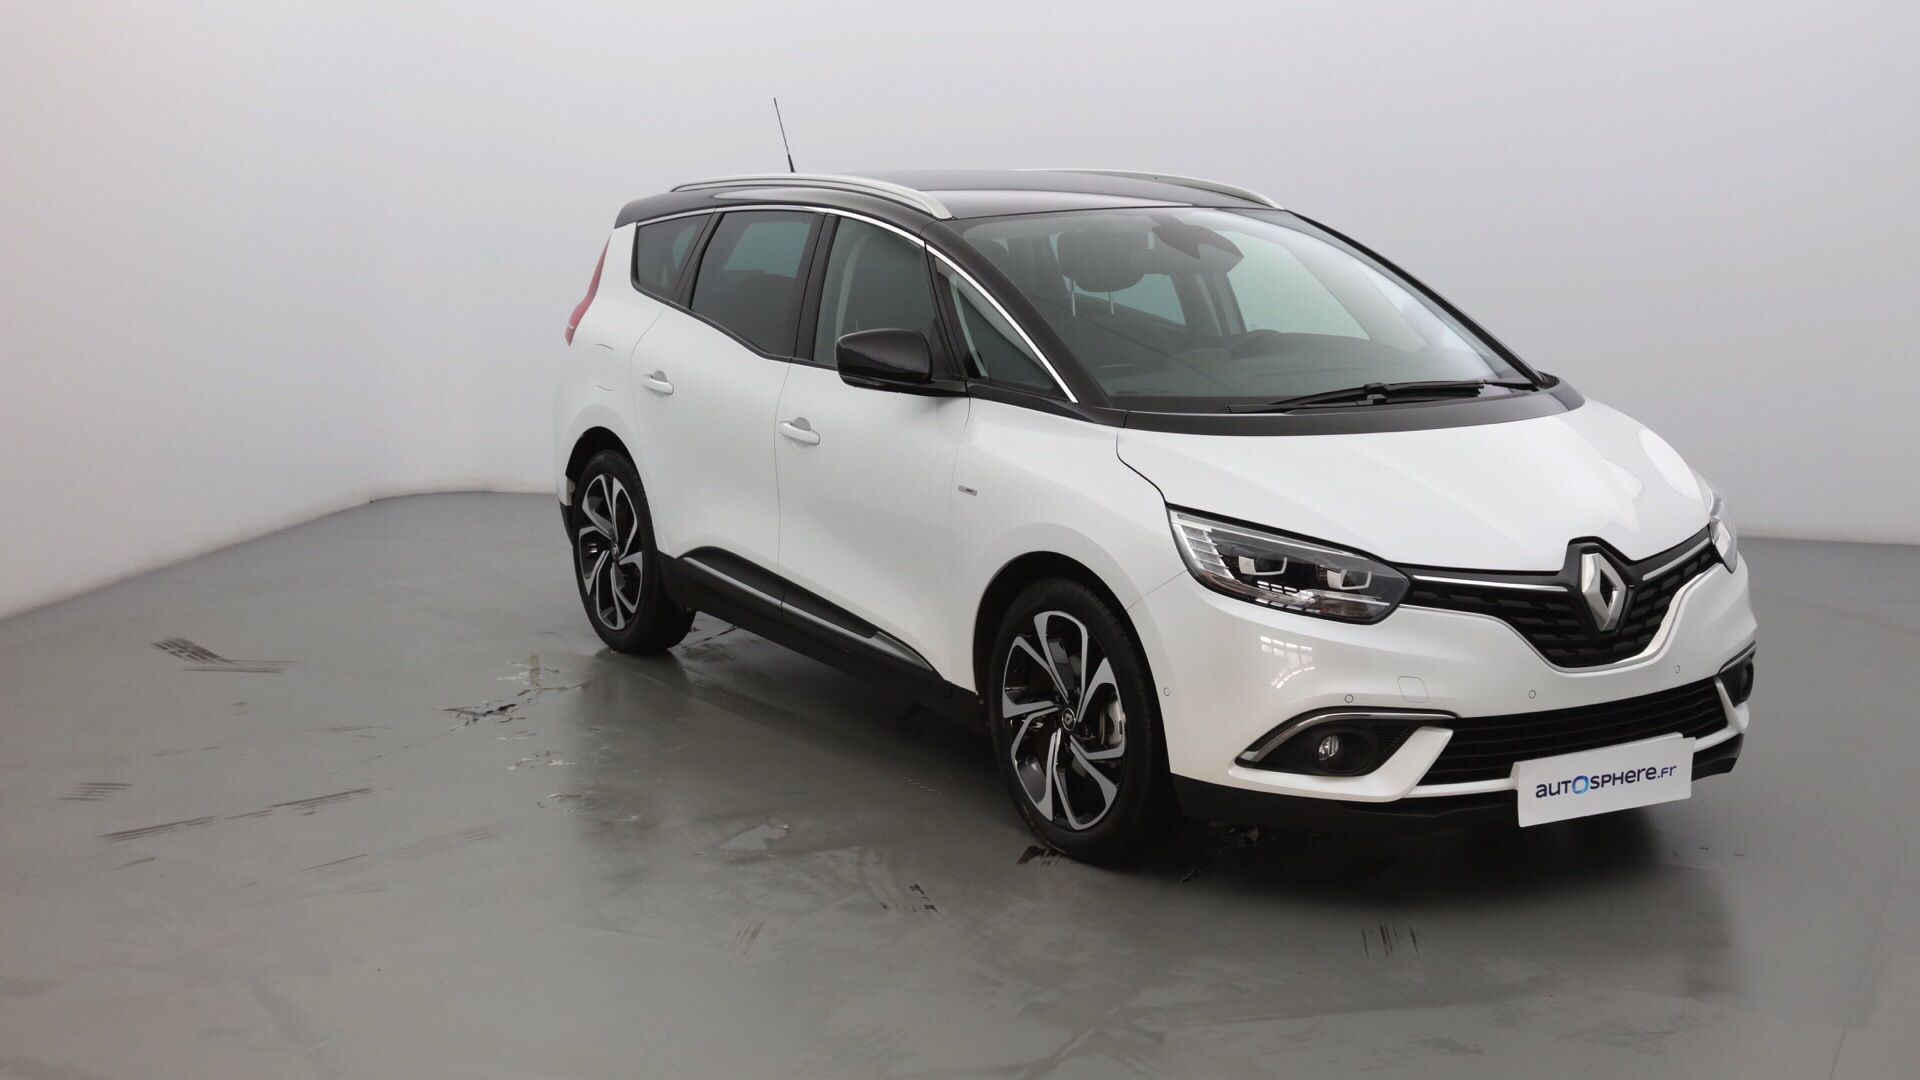 RENAULT GRAND SCENIC 1.3 TCE 140CH ENERGY INTENS - Miniature 3